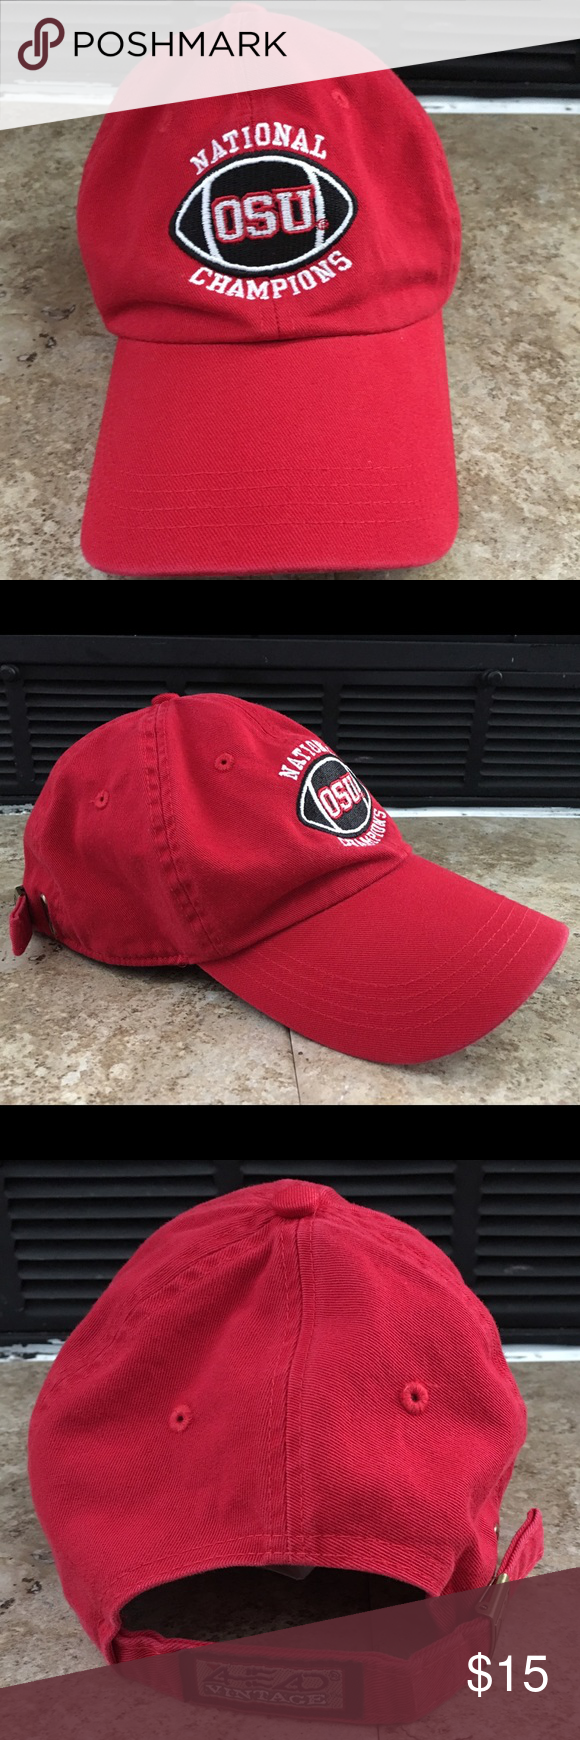 separation shoes 68b73 7bad8 ... best coupon for vintage ohio state university football champs cap  vintage excellent condition one size fits